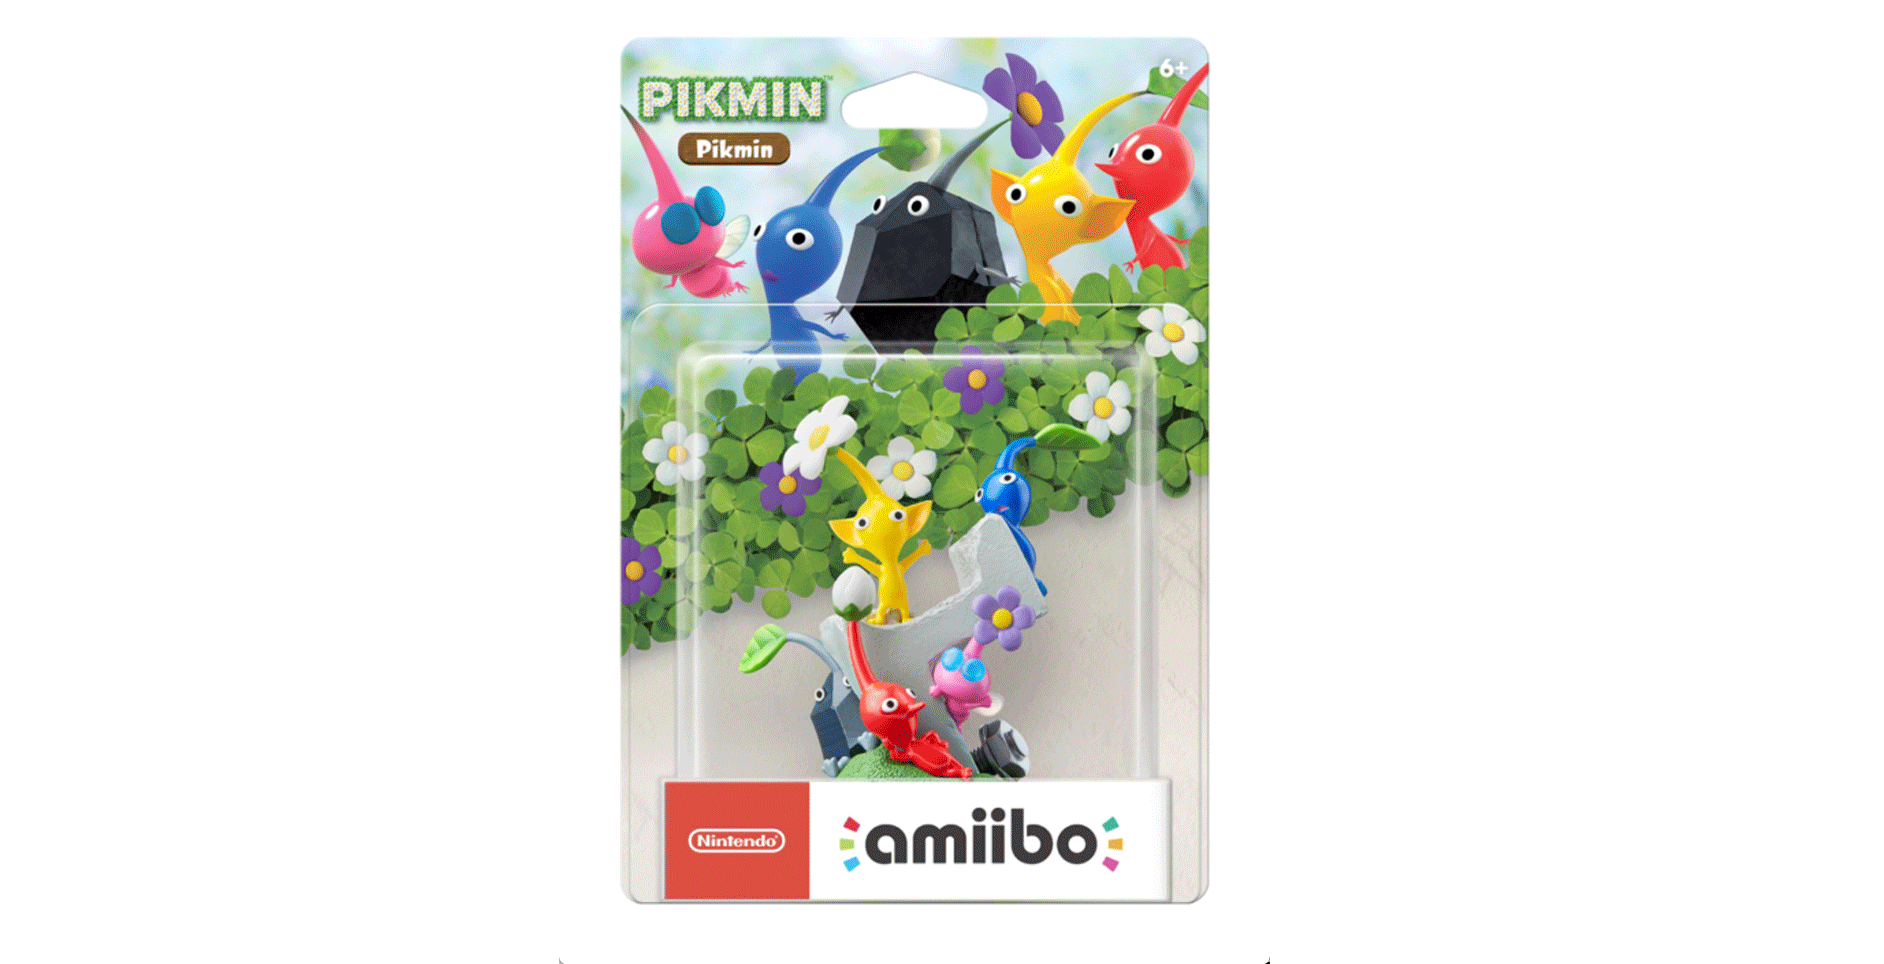 Nintendo Announced on their Nintendo Direct that Hey Pikmin! would release on Nintendo 3DS on July 29th. The game is the first 2D platform for the Pikmin franchise. Alongside the game, Nintendo will release a new Pikmin Amiibo, which looks absolutely fantastic. Honestly, I wish this was coming to the Switch, but it looks incredibly …